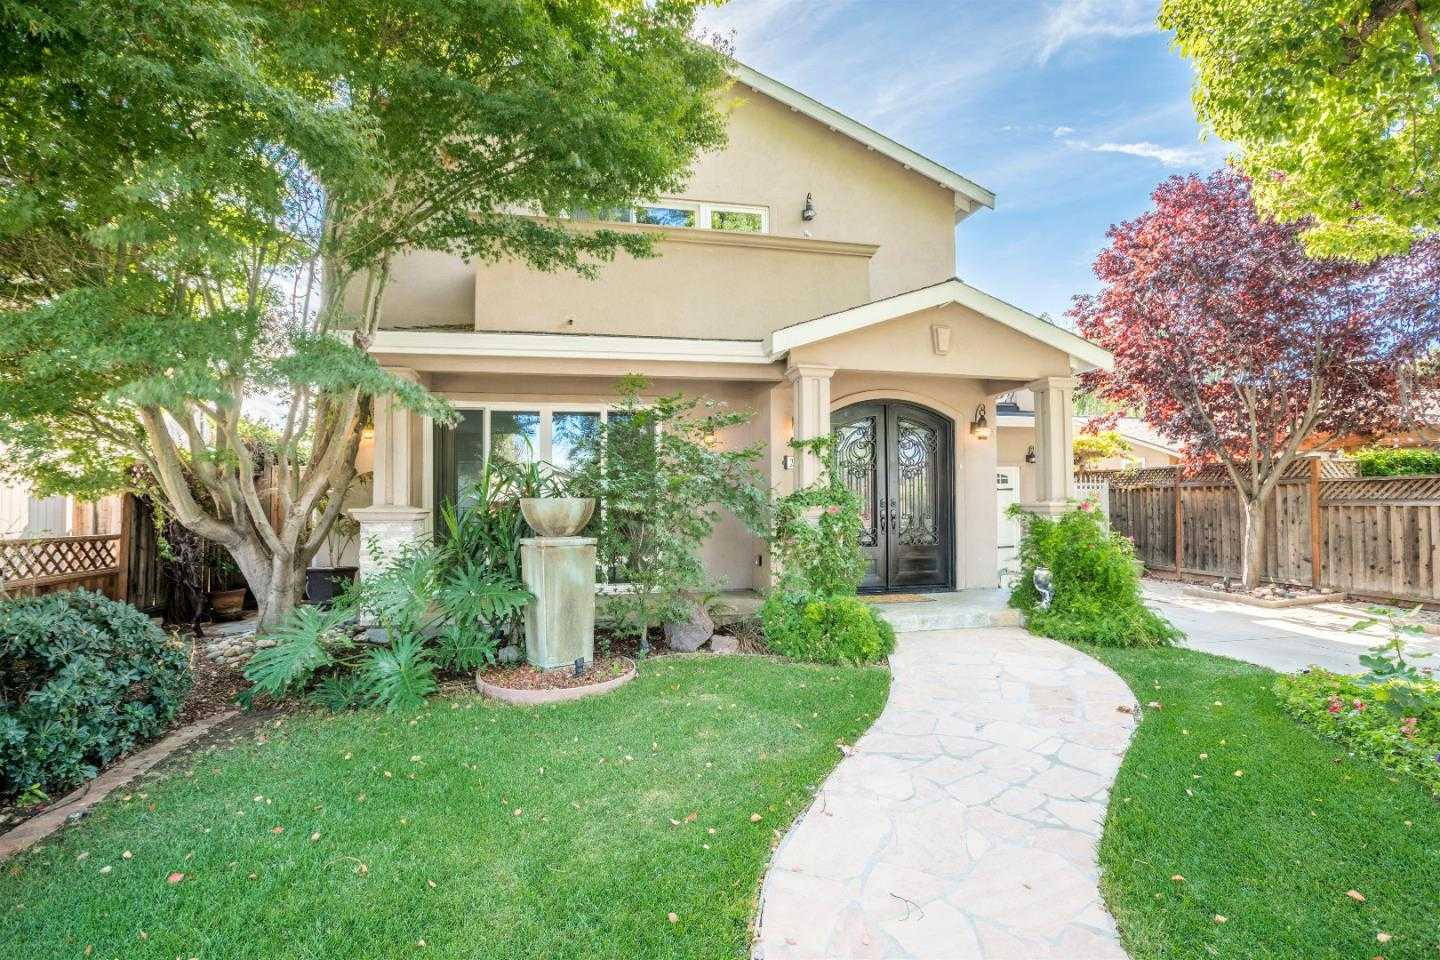 $1,699,000 - 5Br/5Ba -  for Sale in San Jose